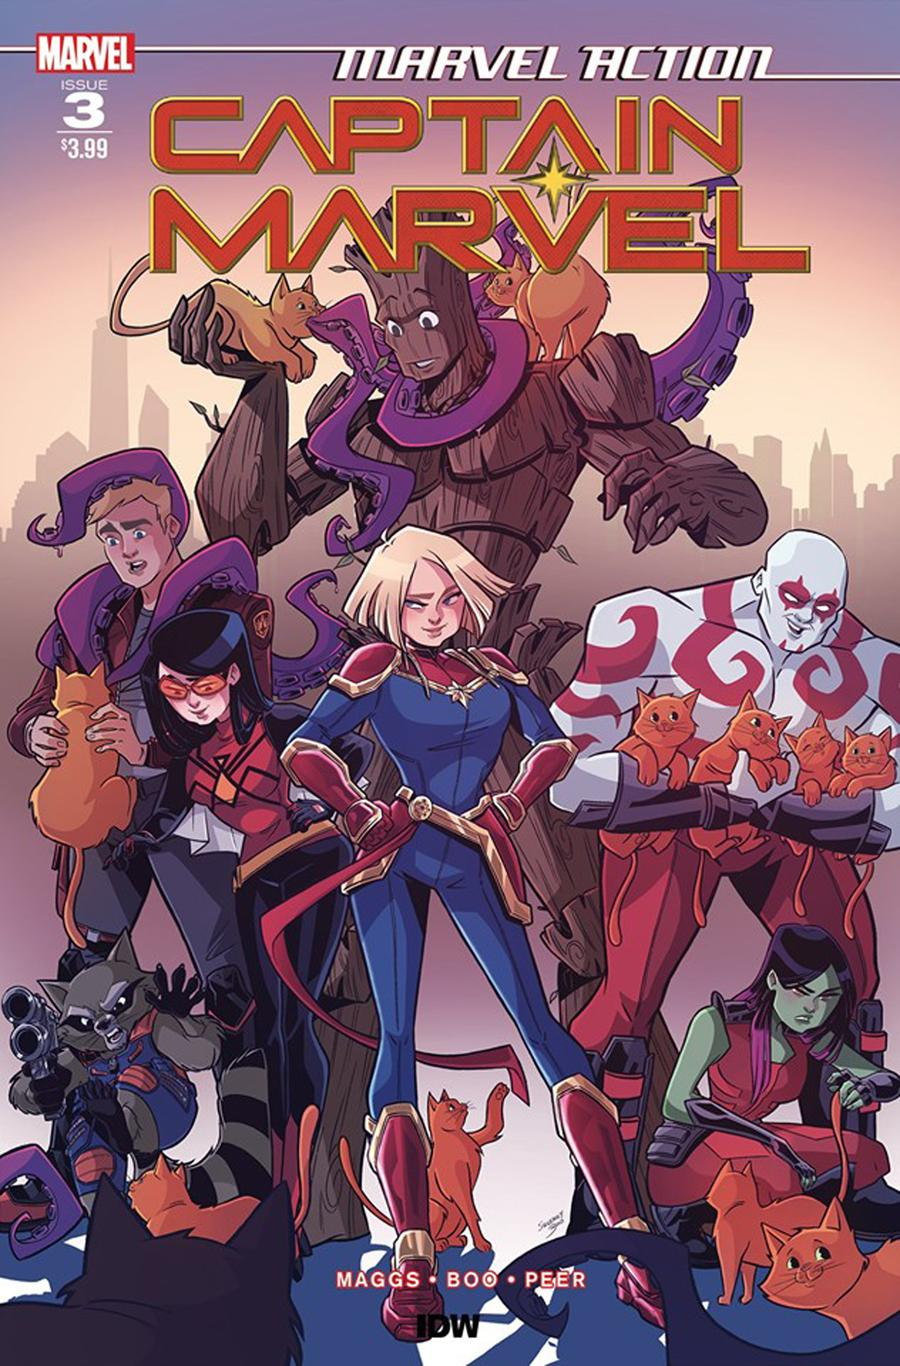 Marvel Action Captain Marvel #3 Cover A Regular Sweeney Boo Cover